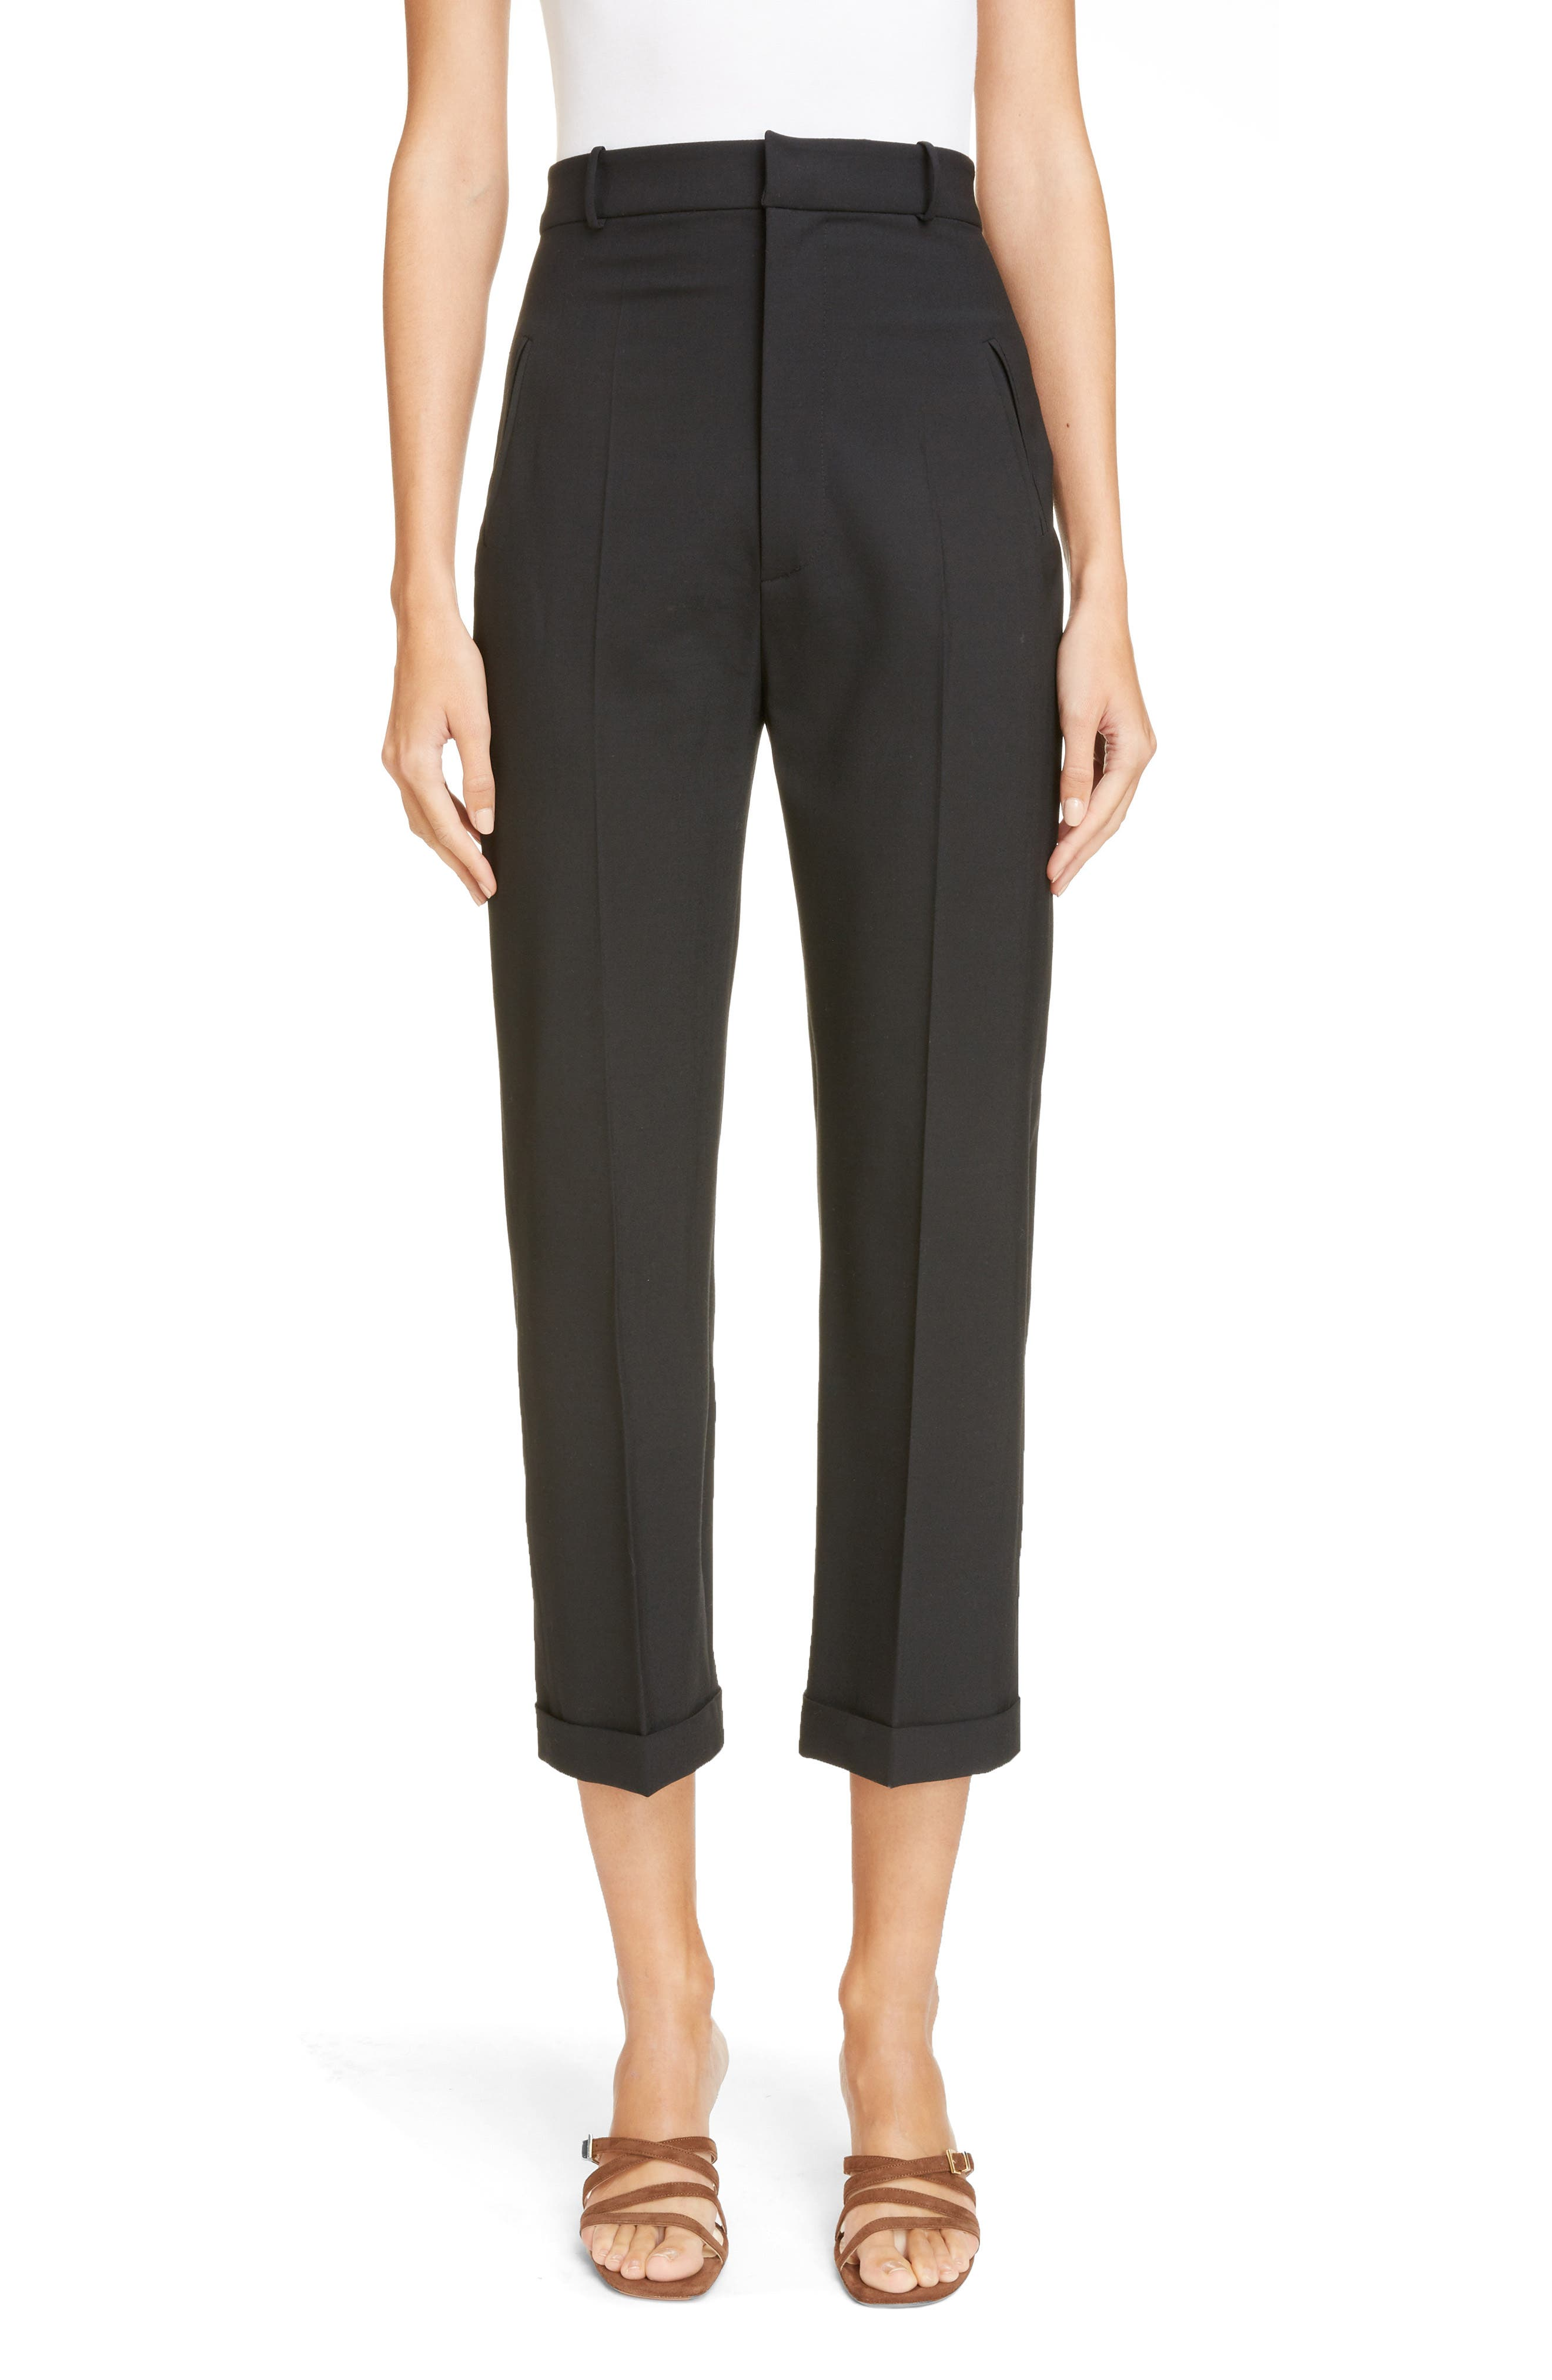 Jacquemus Le Pantalon High Waist Crop Pants